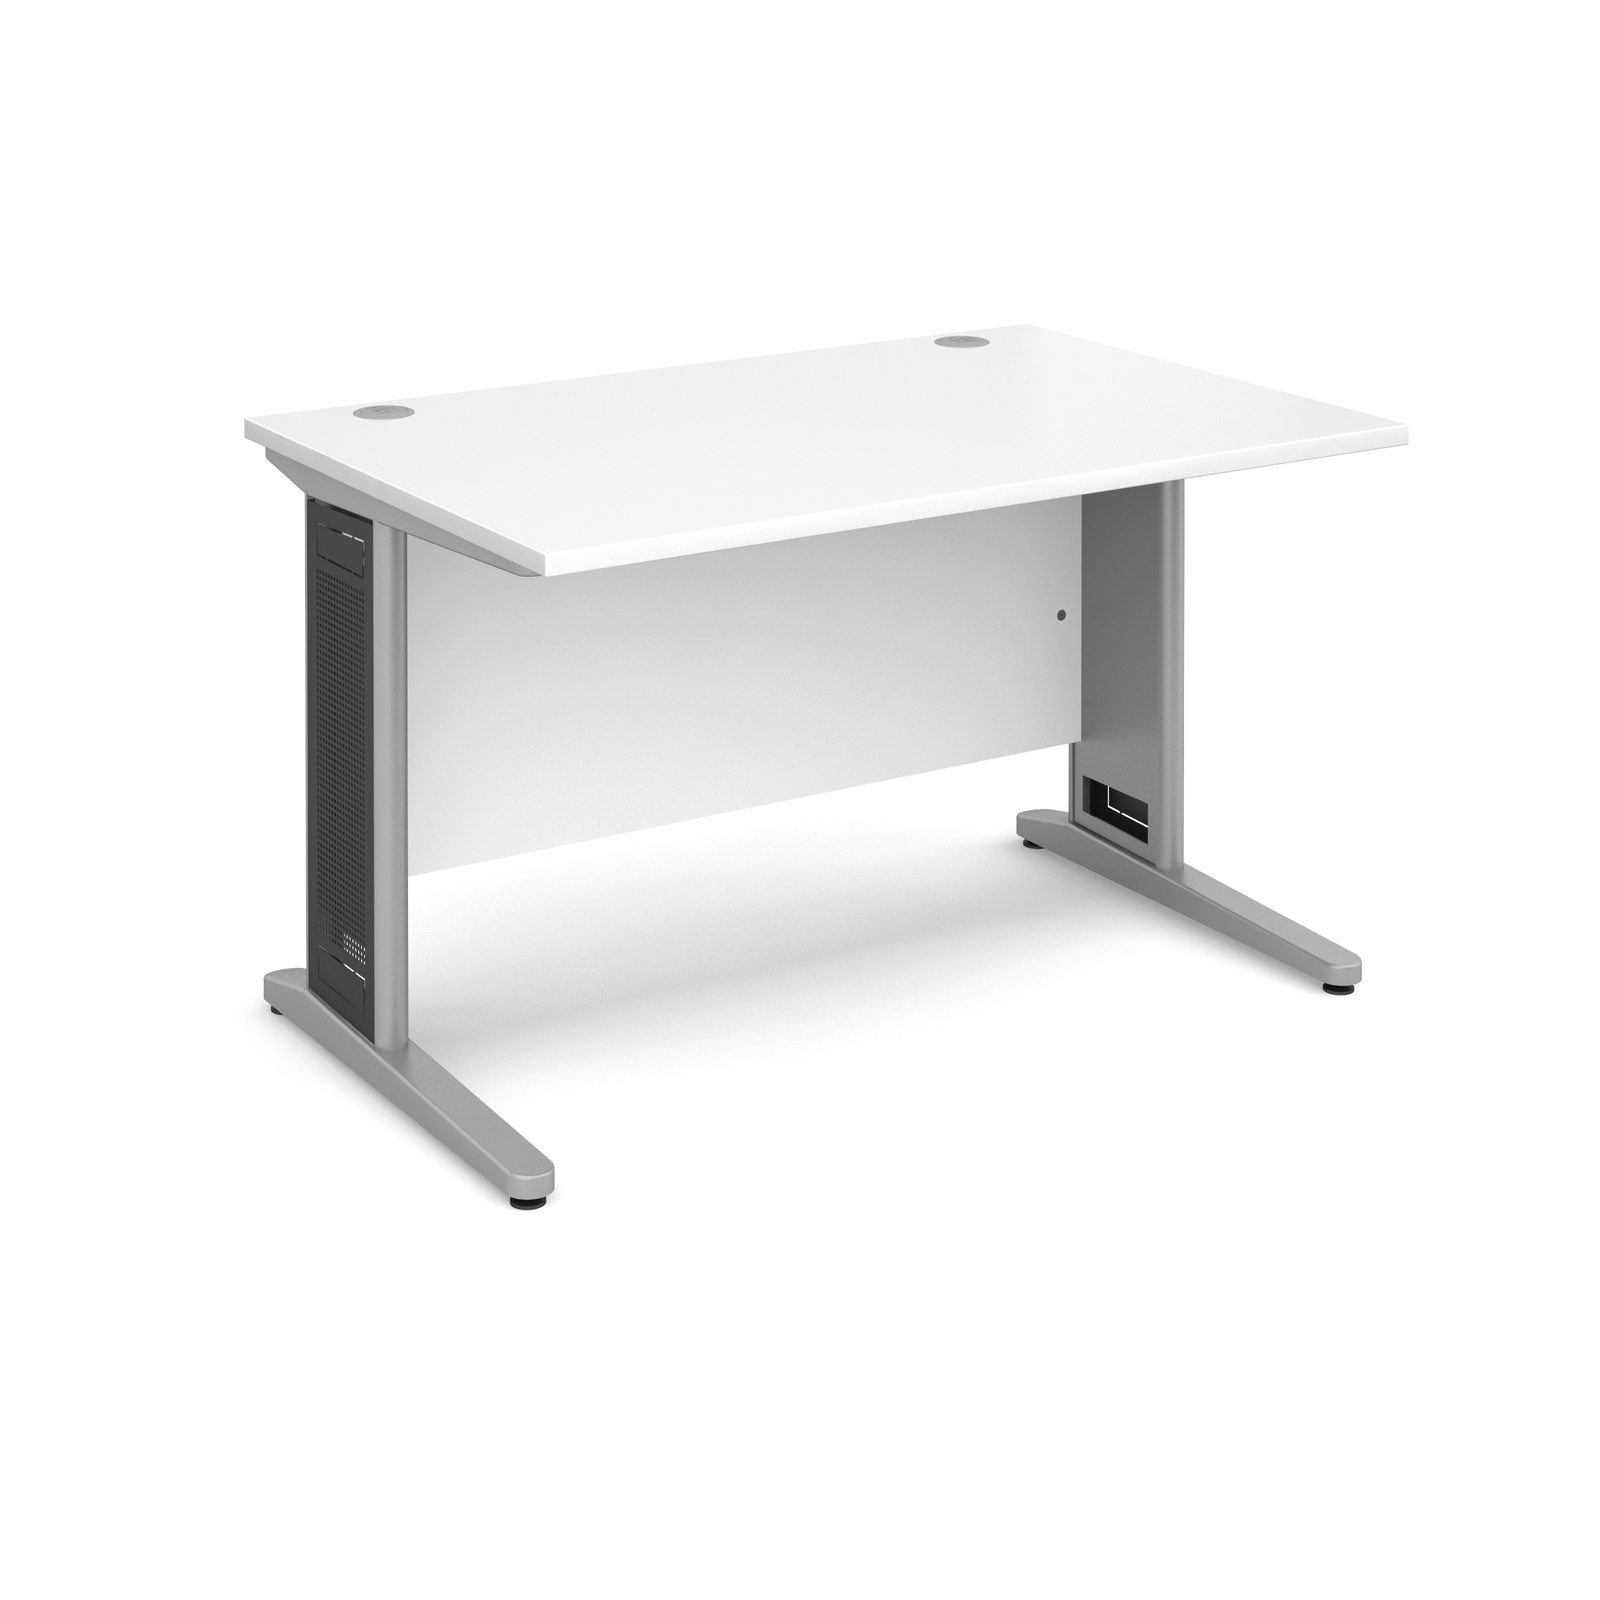 Largo straight desk 1200mm x 800mm - silver cantilever frame with removable grill, white top